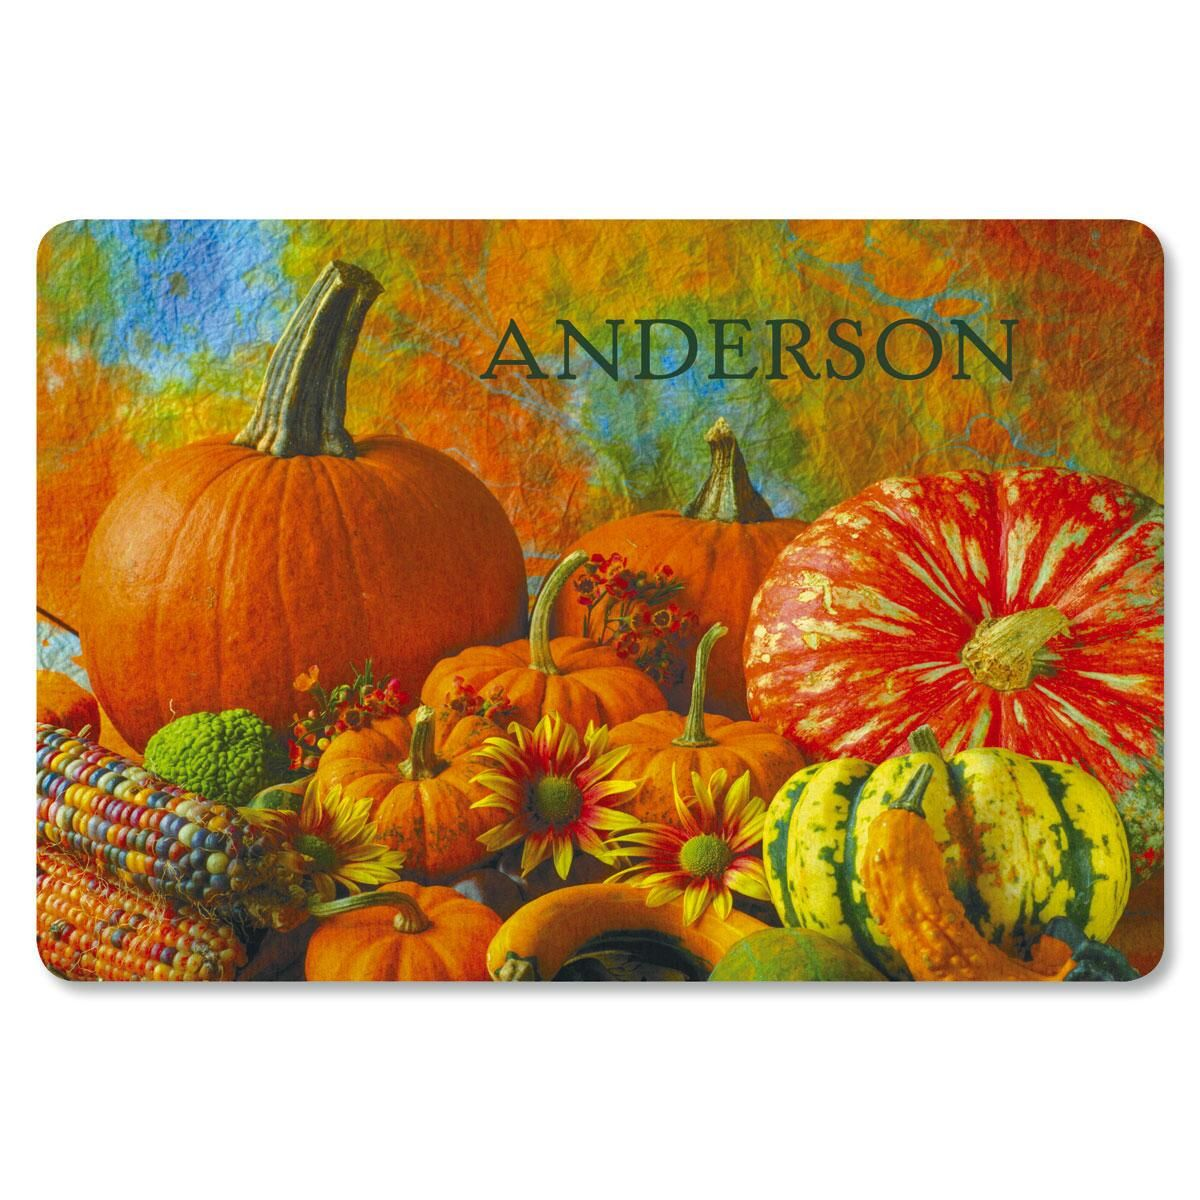 Beautiful Pumpkins Personalized Welcome Doormat